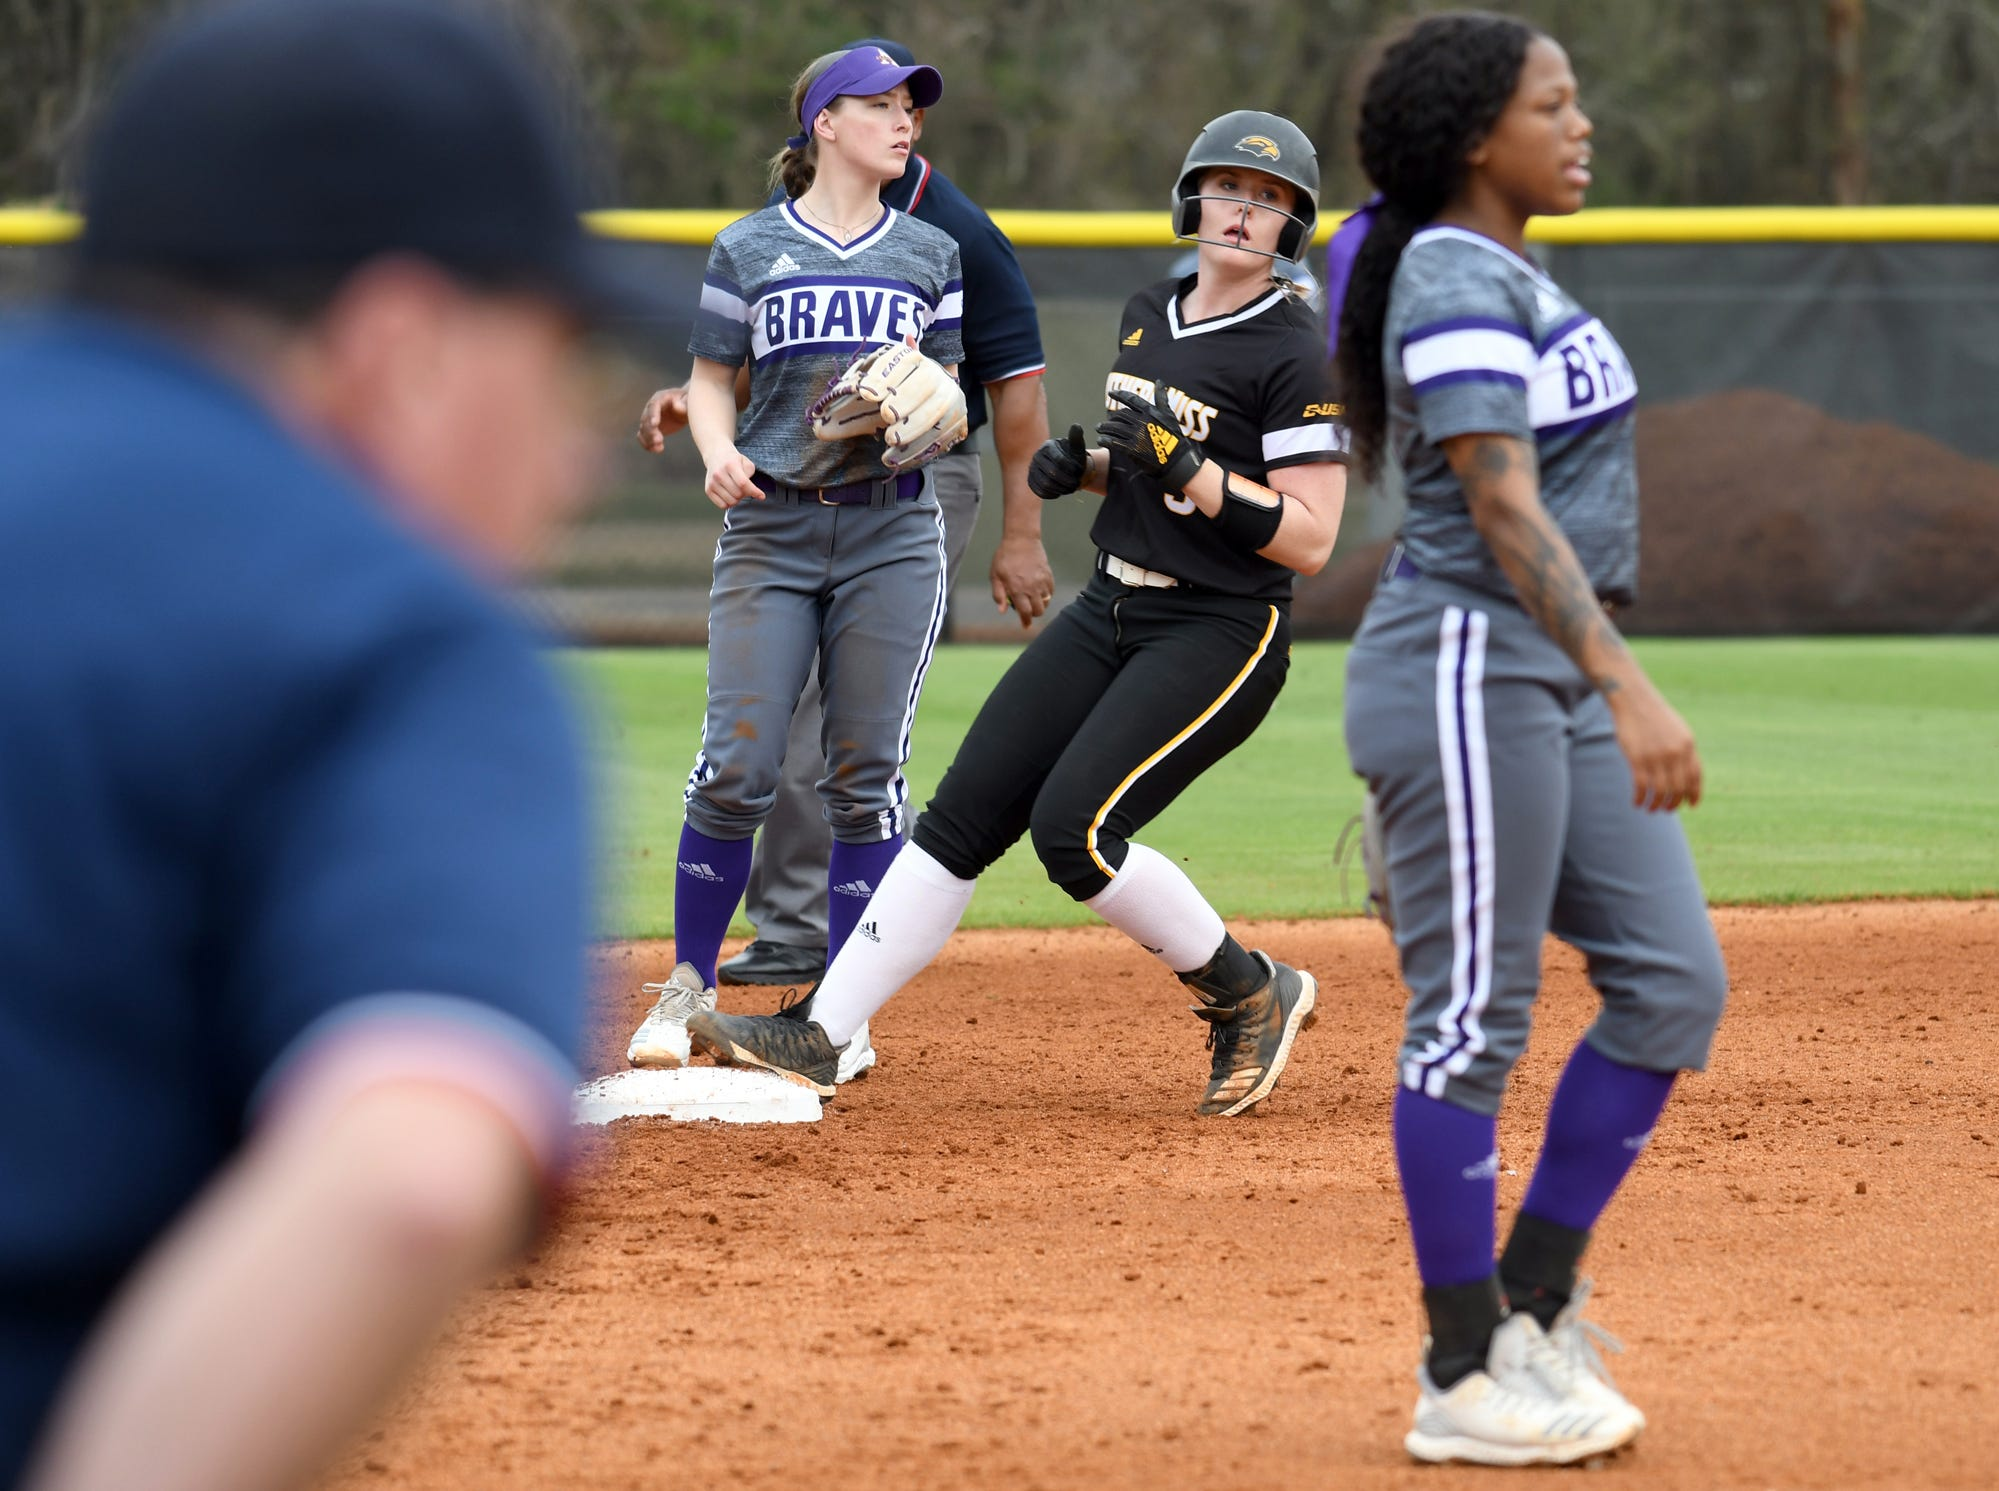 Southern Miss infielder Sarah Van Schaik steps onto second base in a game against Alcorn on Tuesday, March 12, 2019.